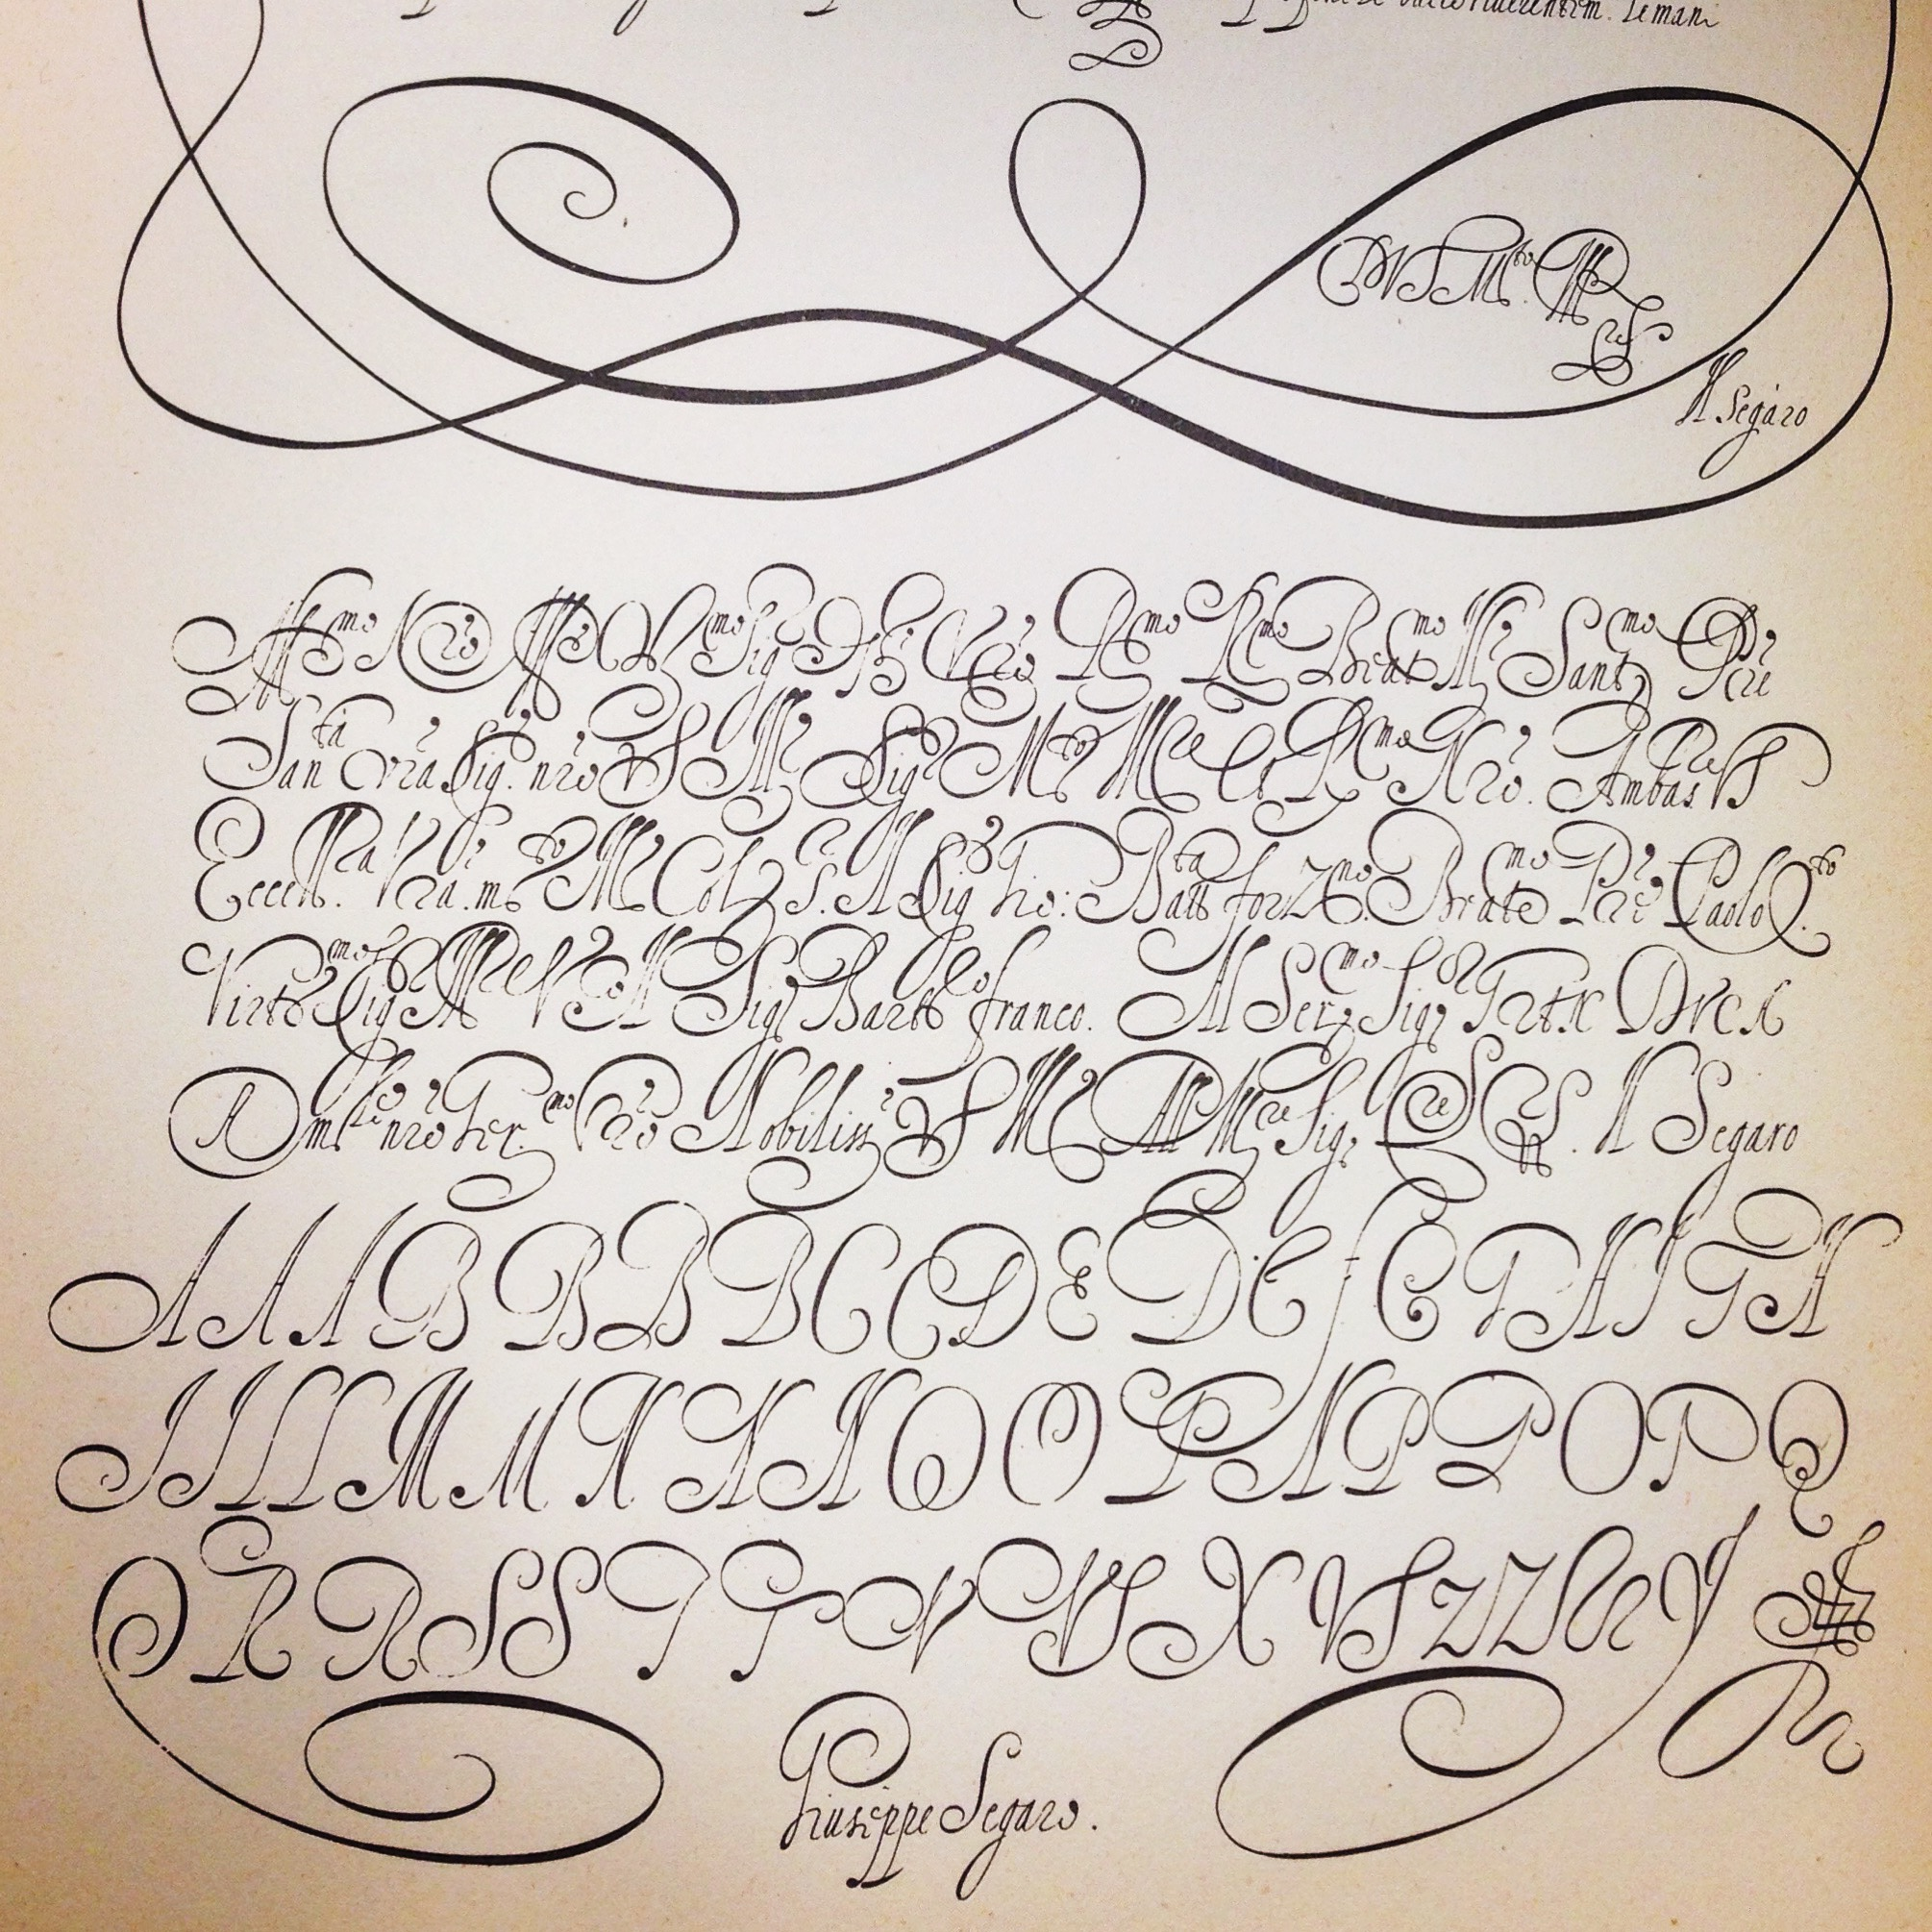 I was able to view many rare books and lettering works at The Herb Lubalin Study Center of Design and Typography. This is just one of the pages of one of my favored calligraphy books there.